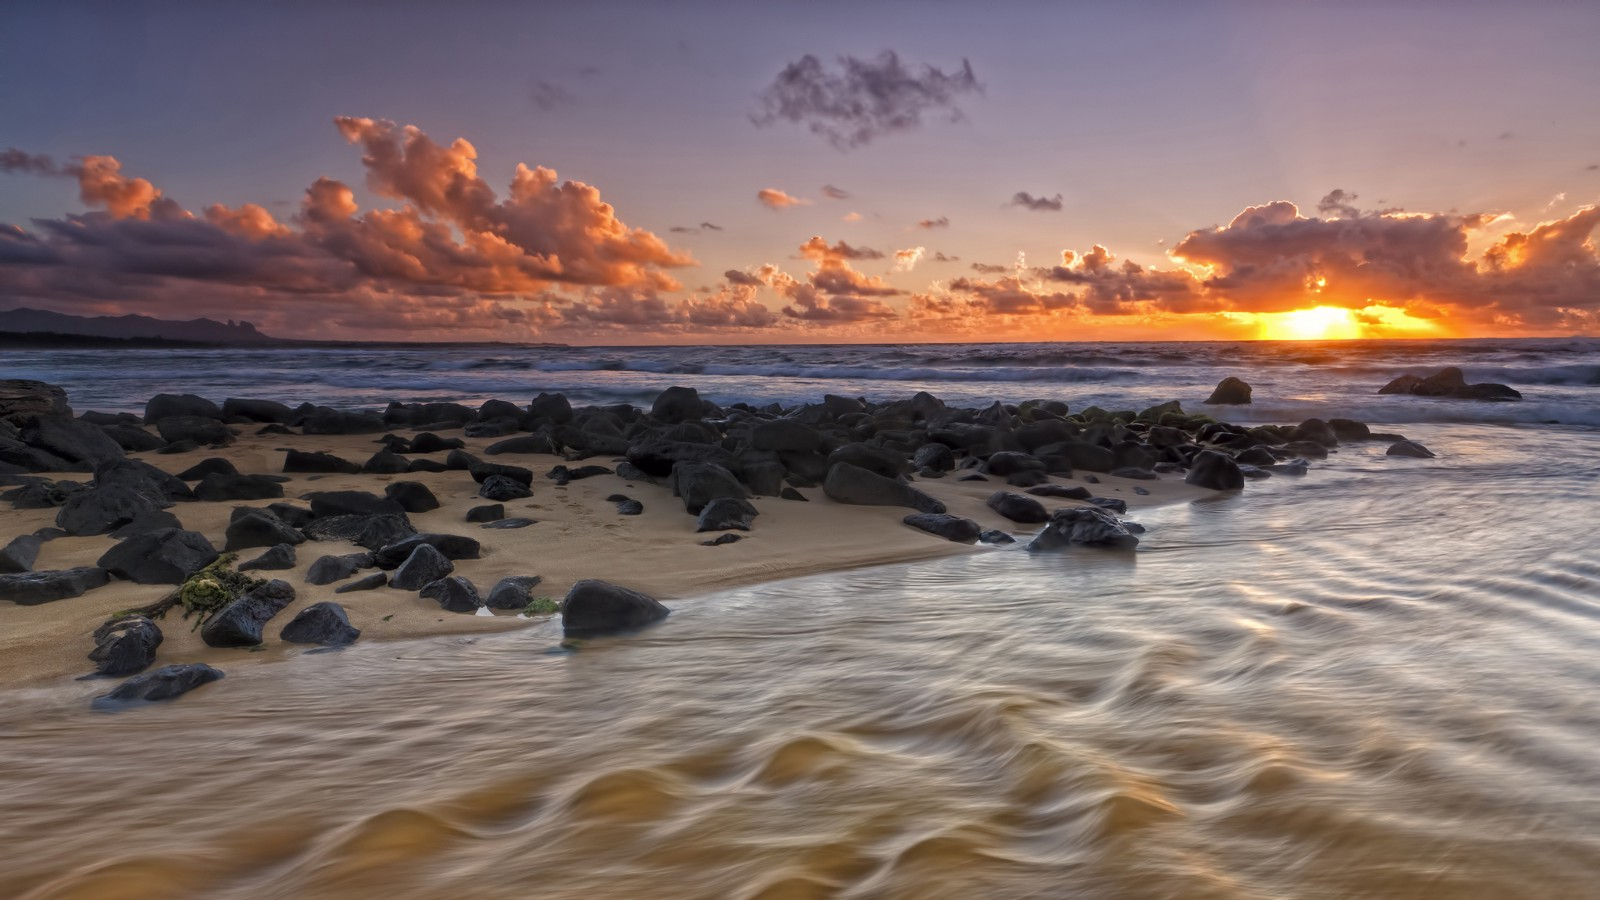 Sunrise over Nukoli'i Beach and stream, Kauai, Hawaii